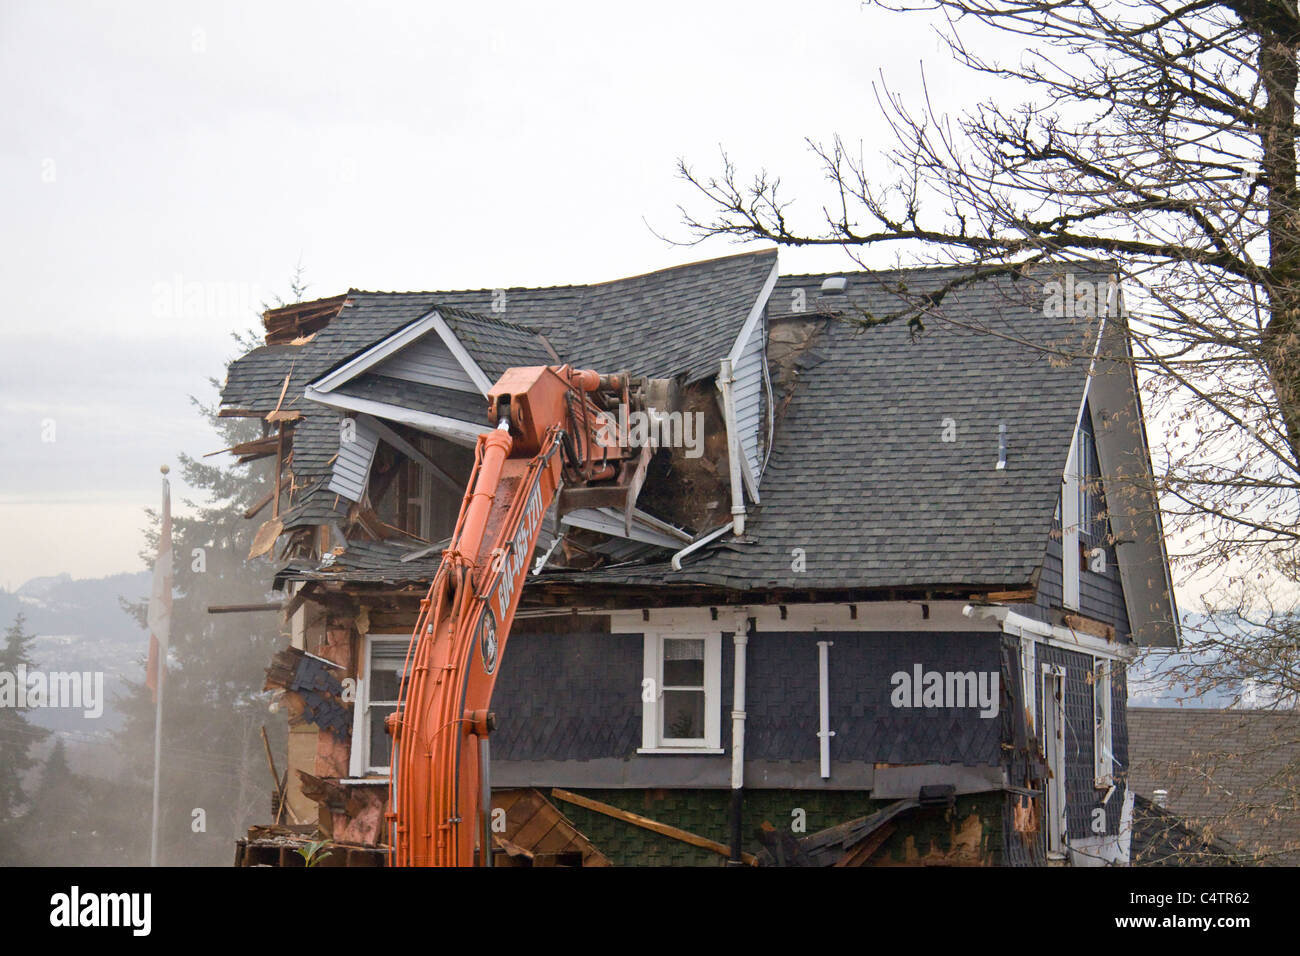 Beautiful character home being demolished to make way for a newer building - Stock Image